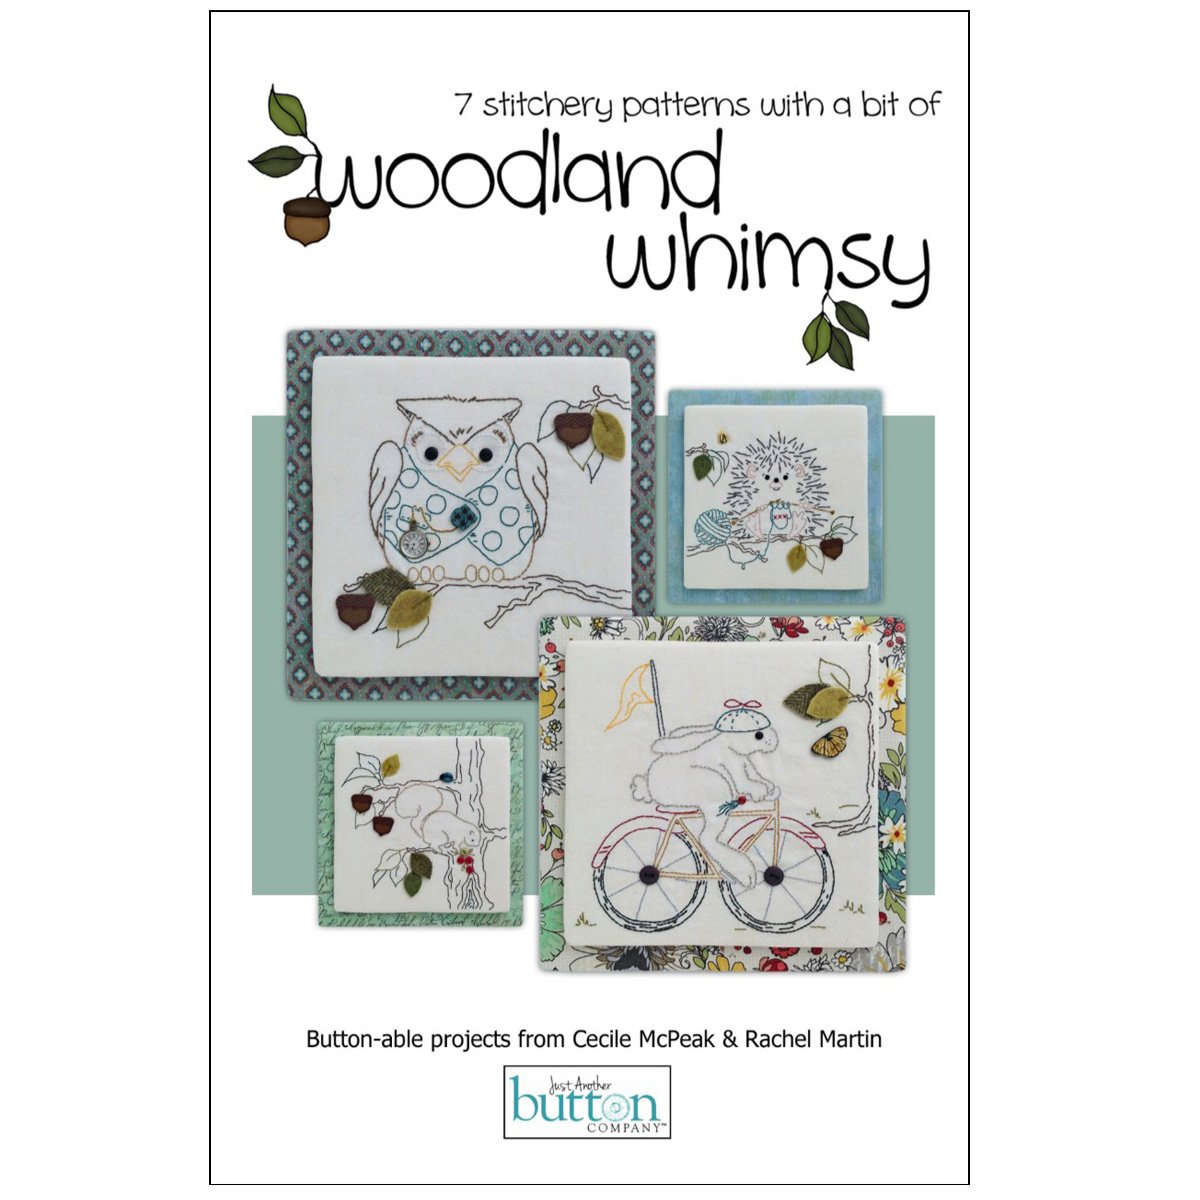 Woodland Whimsy Embroidery Kit